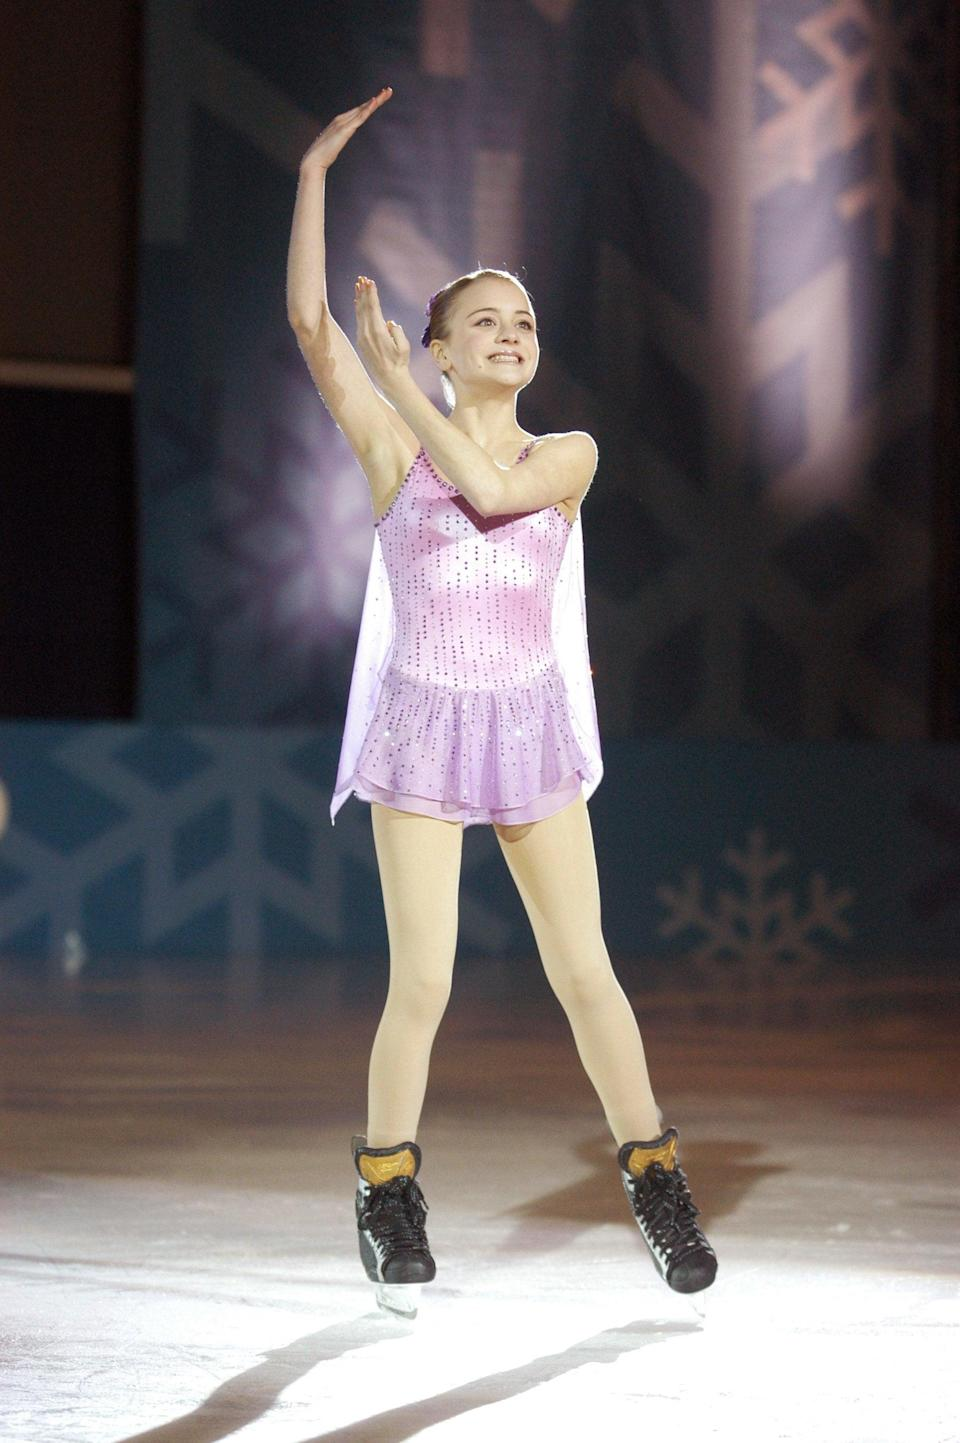 """<p>Teenage figure skater Katelin will do anything to work with a renowned Russian coach, so she nabs herself a scholarship to the elite skating academy. The only catch? She has to play on their hockey team as well, forcing her to lead a double life and hide it from everyone.</p> <p><a href=""""http://www.disneyplus.com/movies/go-figure/5UOvbnFAwSxI"""" class=""""link rapid-noclick-resp"""" rel=""""nofollow noopener"""" target=""""_blank"""" data-ylk=""""slk:Watch Go Figure on Disney+."""">Watch <strong>Go Figure</strong> on Disney+.</a></p>"""